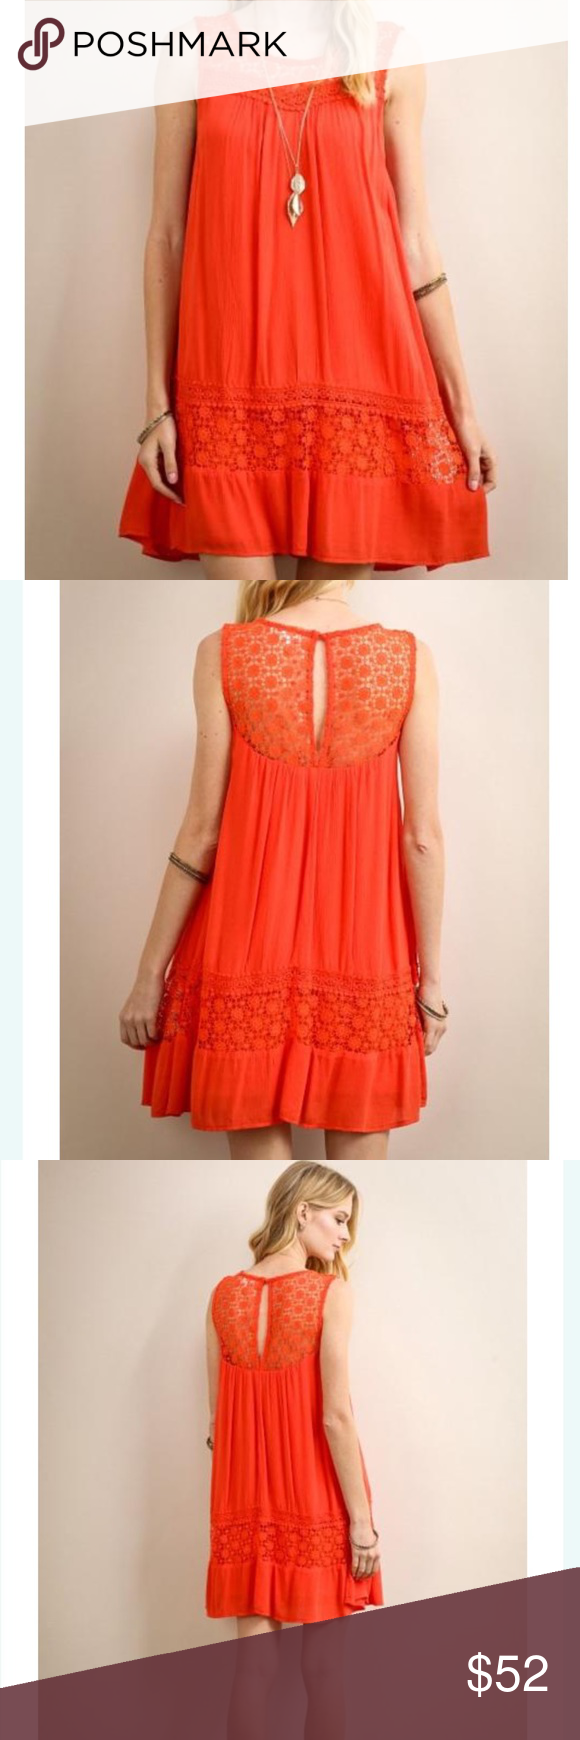 "💋Poppy Dress This dress is a pretty poppy red/orange color with crochet accents at bodice, back and skirt.  Button closure in back of neck.  Fabric 100% rayon with polyester lining.  Length is 33"" on mannequin.   Glad to measure sizes upon request 🌻no trades 🌻pricing firm unless bundled Dresses"